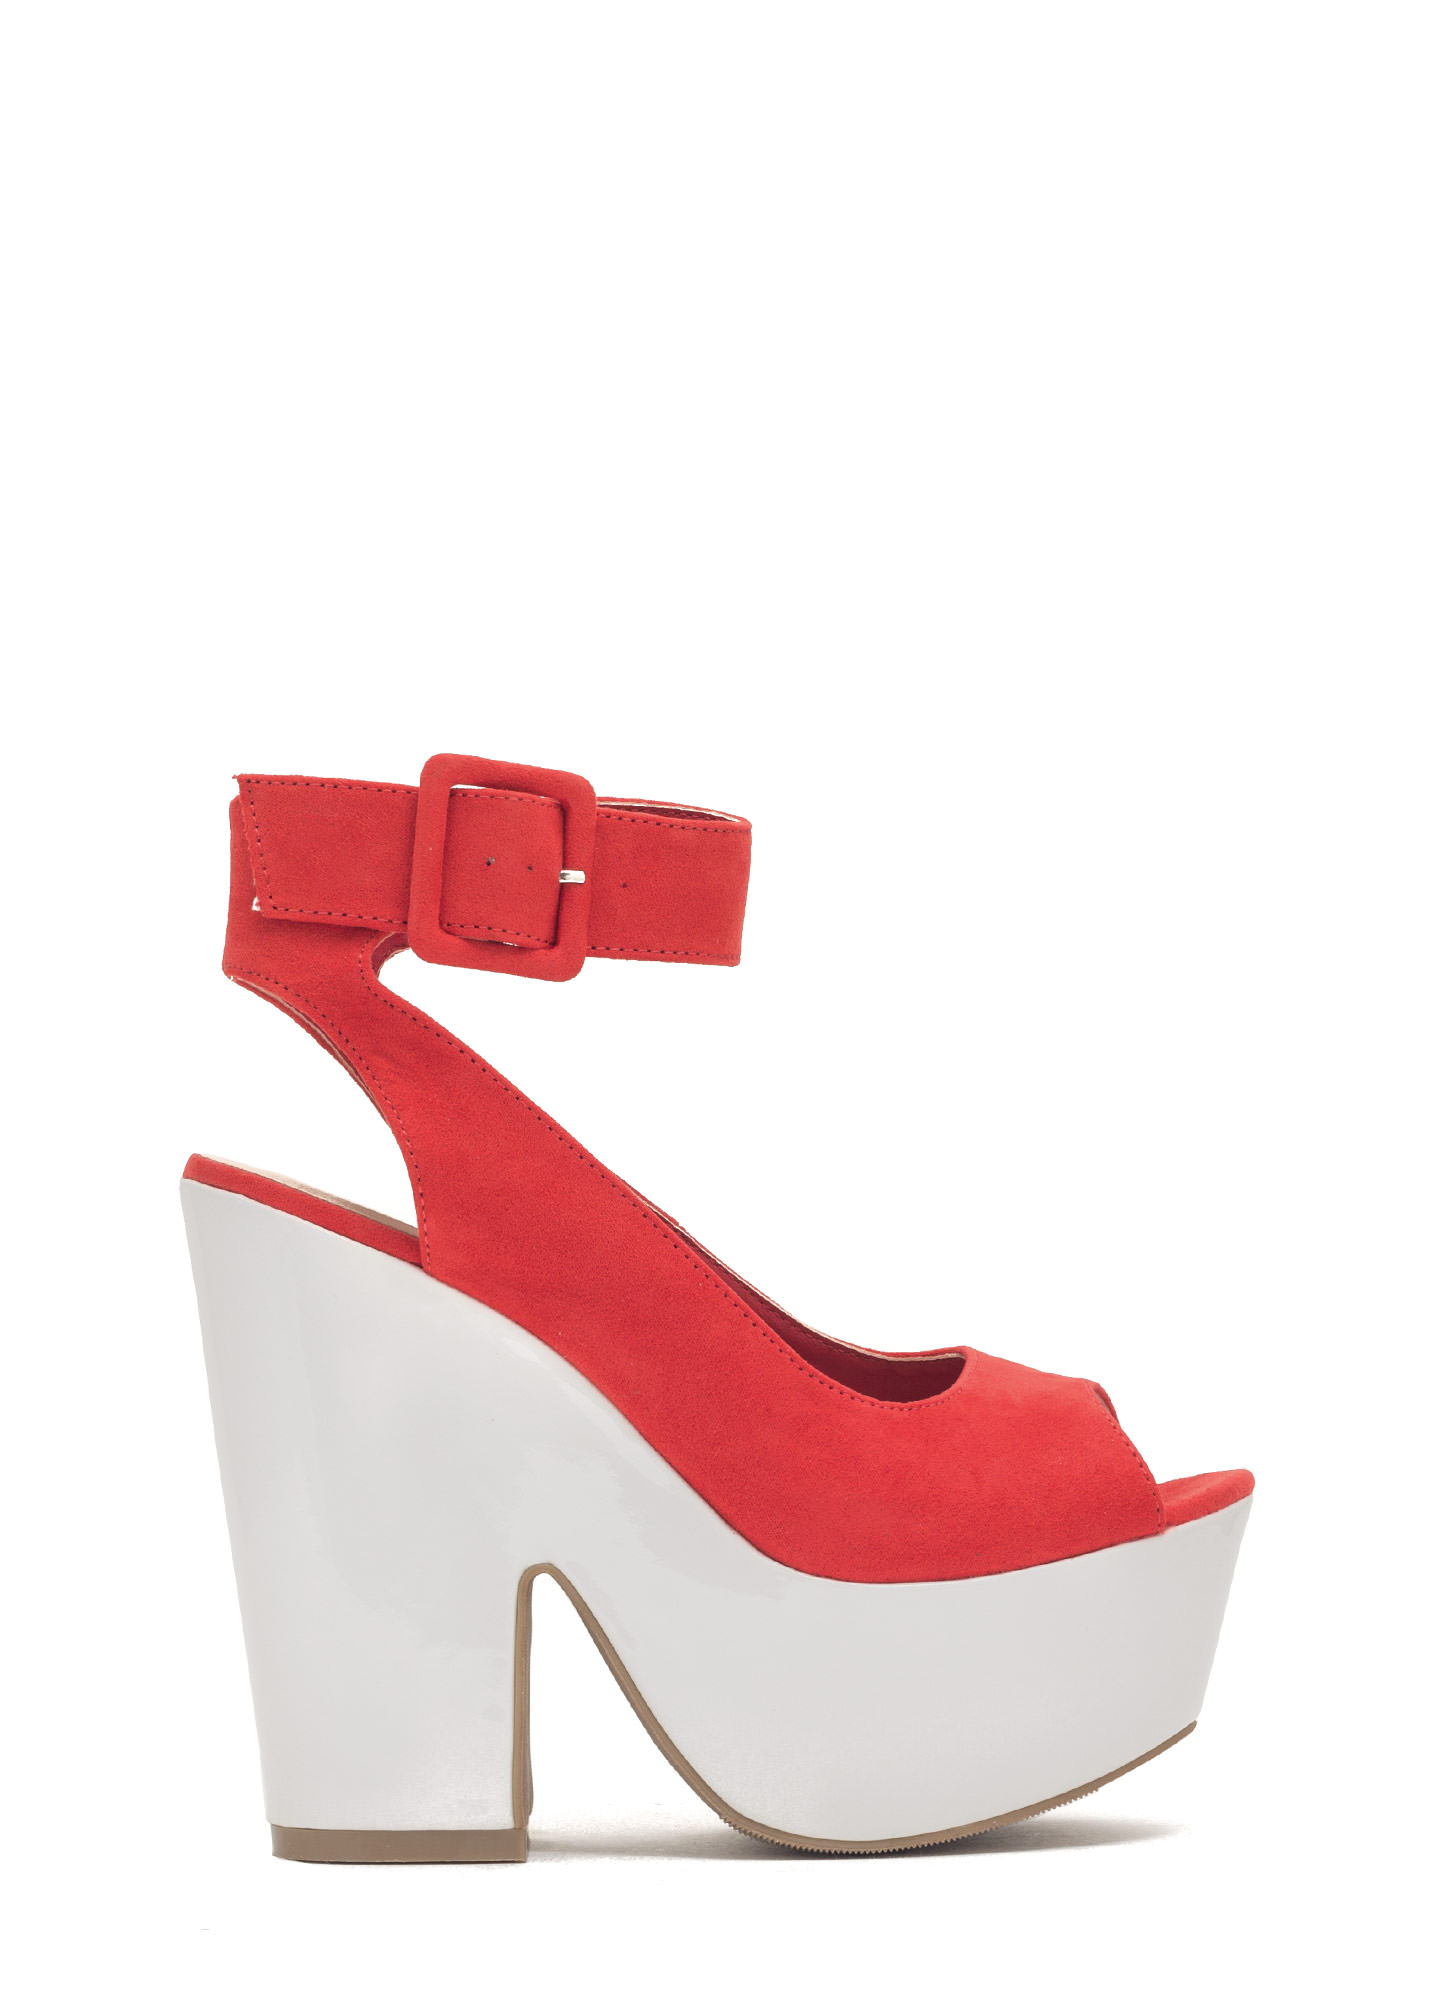 Thru Thick 'N Thin Platform Heels ORANGE